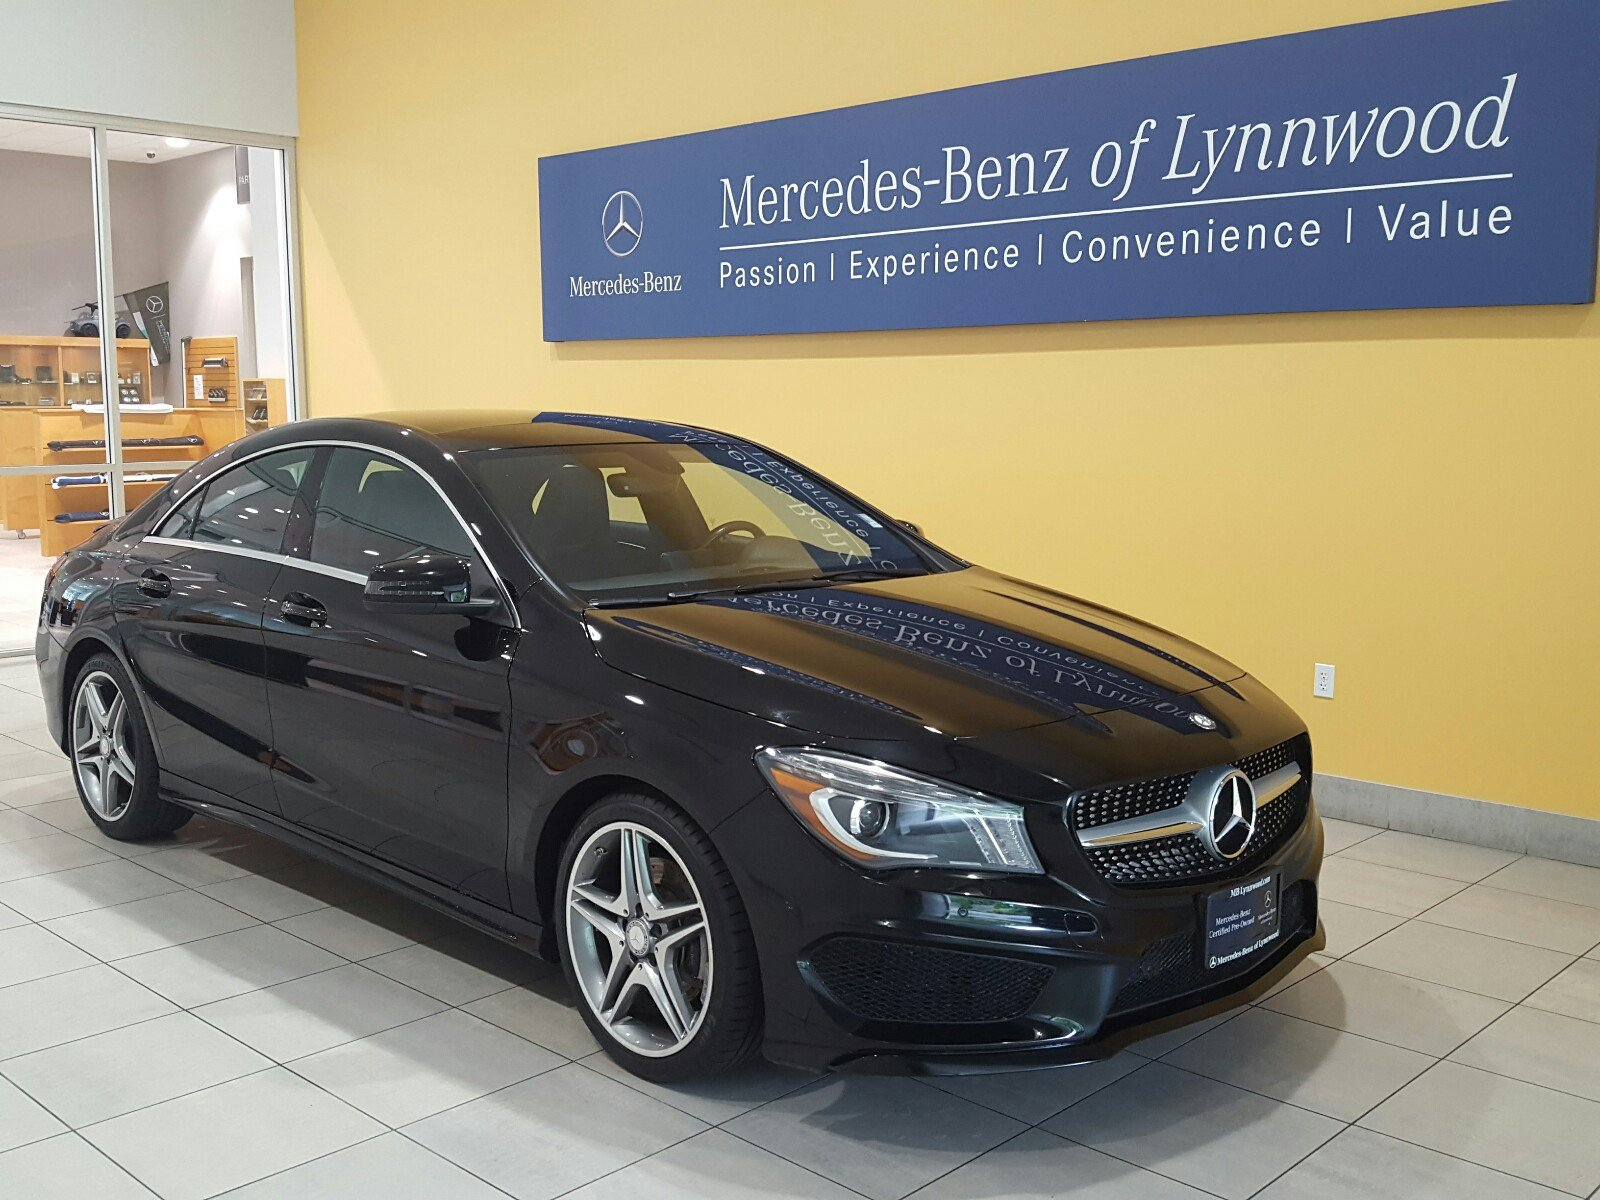 Certified pre owned 2014 mercedes benz cla cla 250 4matic for Certified pre owned mercedes benz